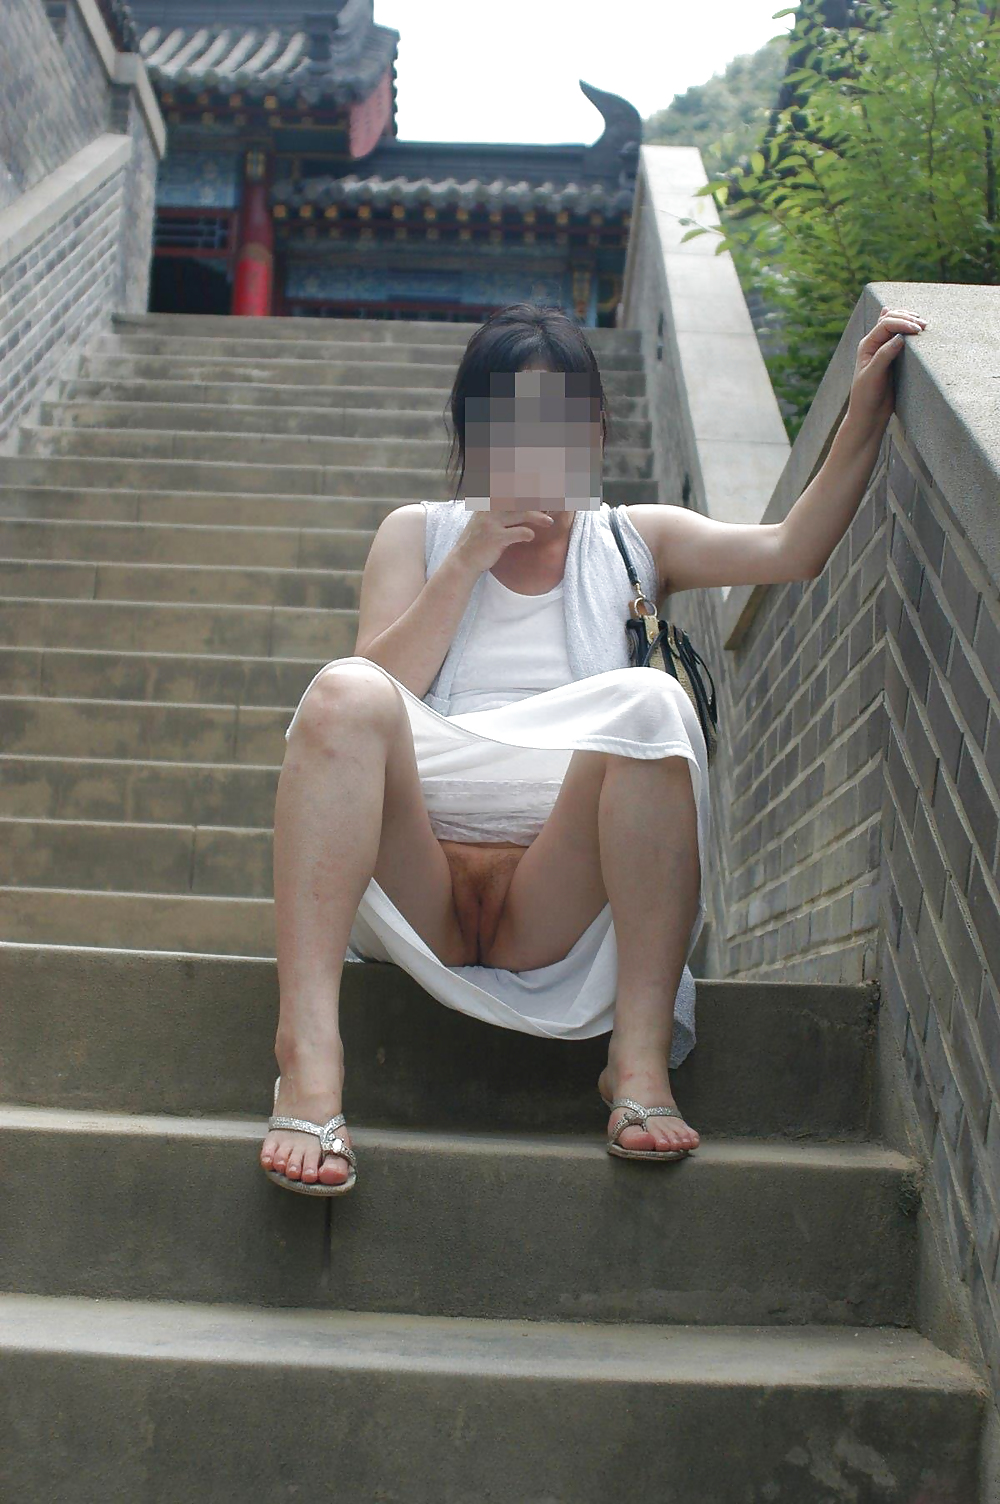 Sorry, Korean public flashing interesting